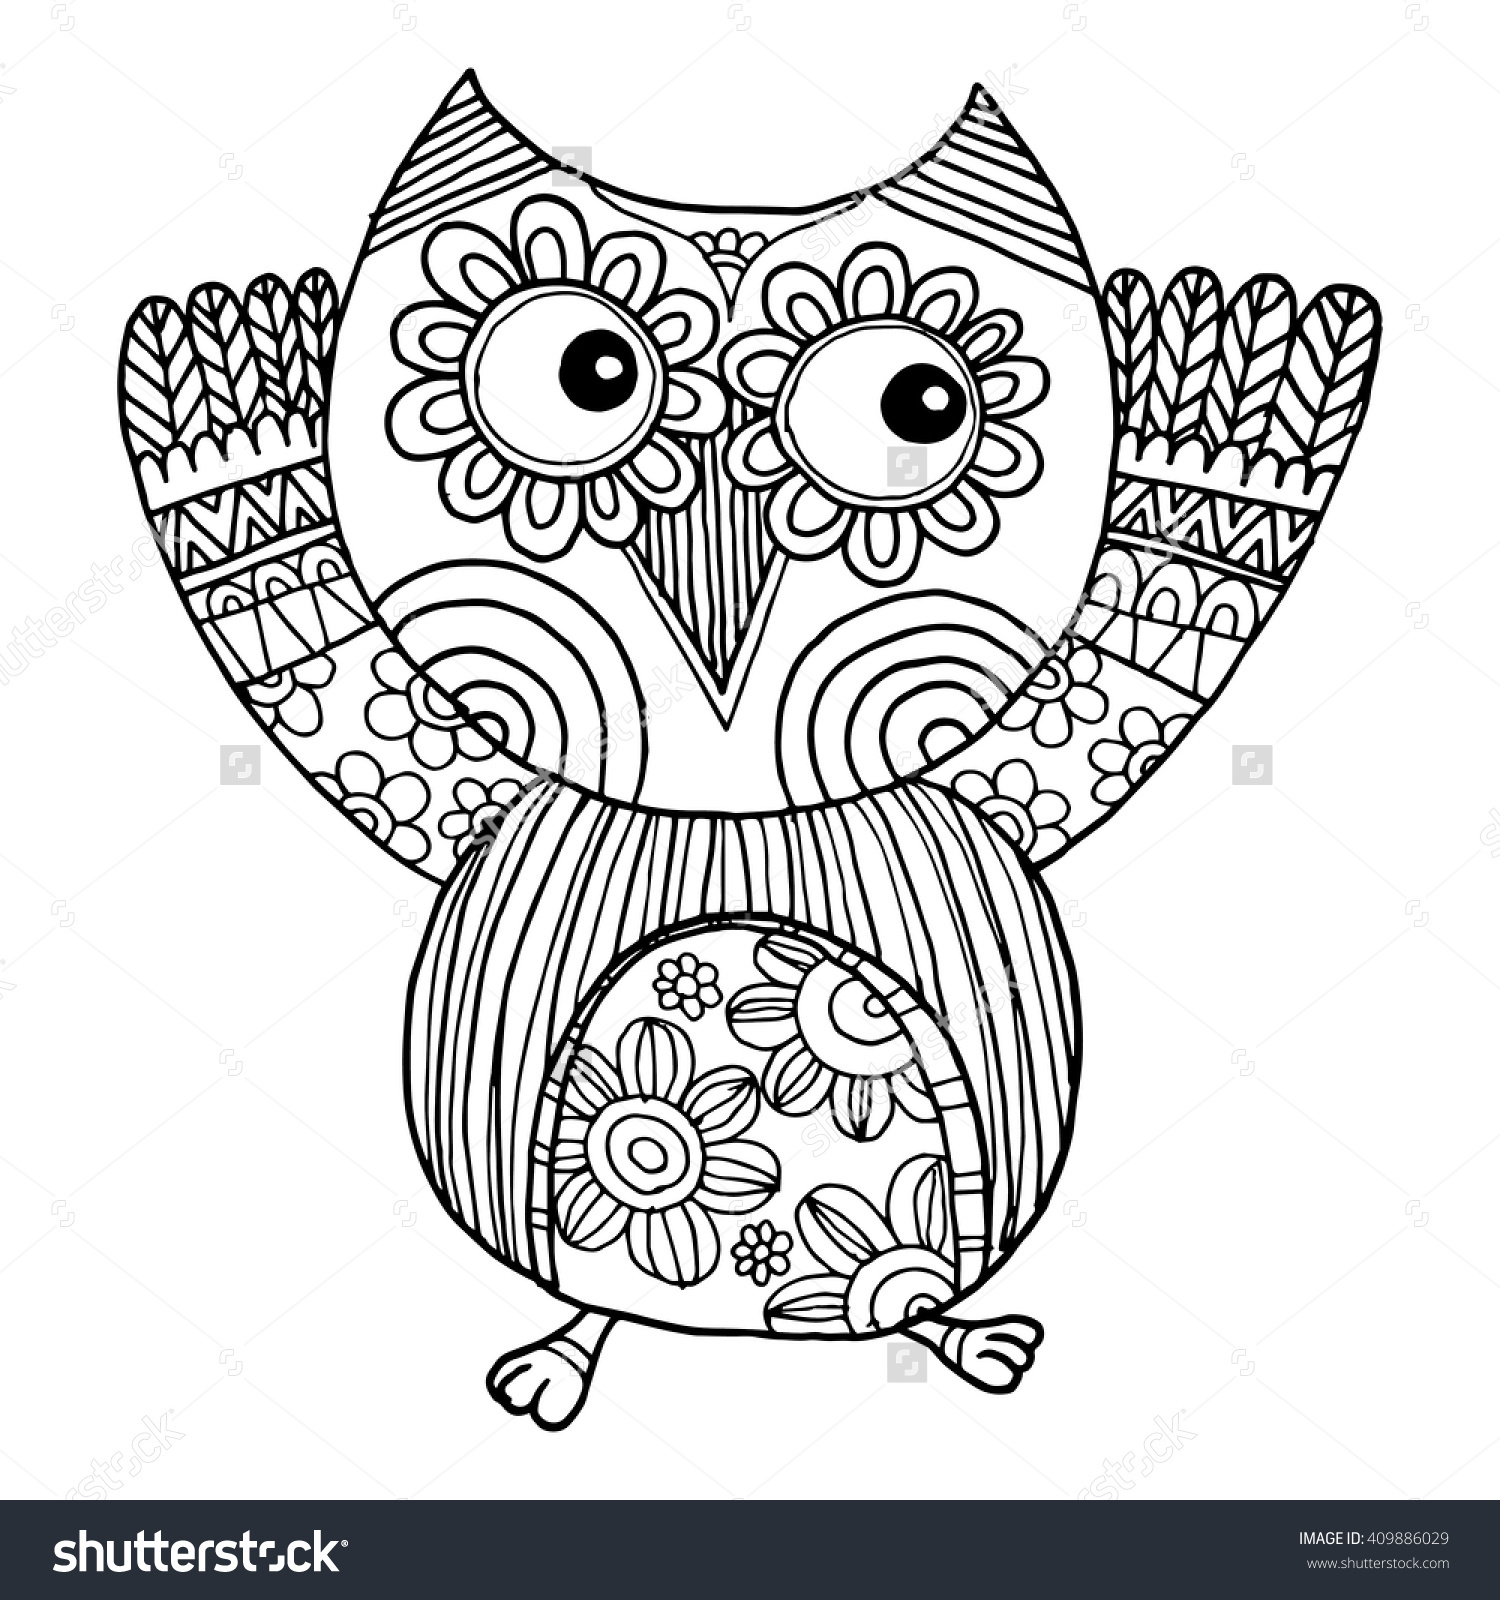 Owlfly coloring #16, Download drawings